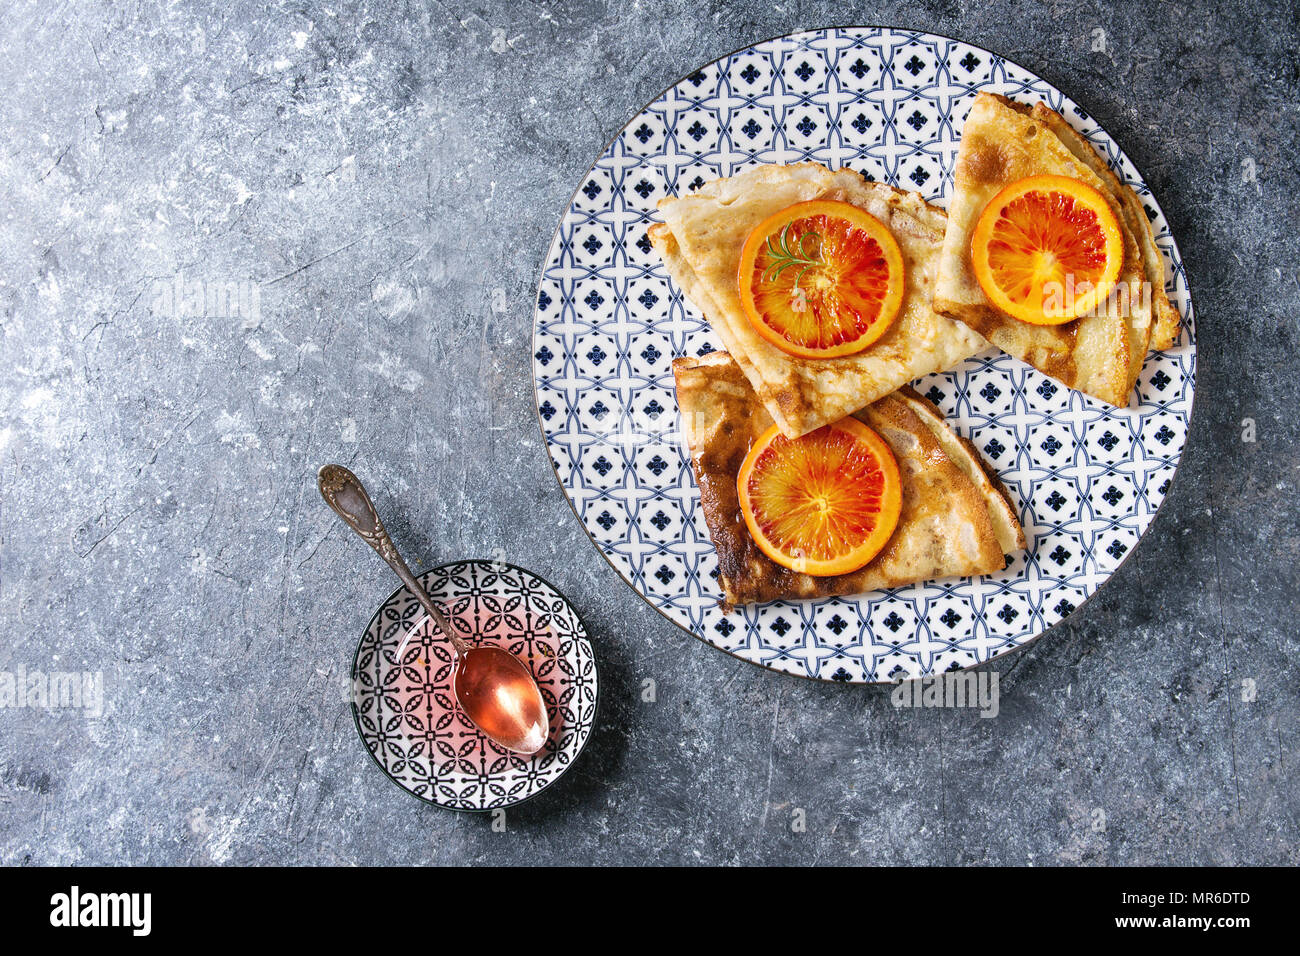 Homemade crepes pancakes served in white decorate ceramic plate with bloody oranges and rosemary syrup with sliced sicilian red oranges over blue text - Stock Image